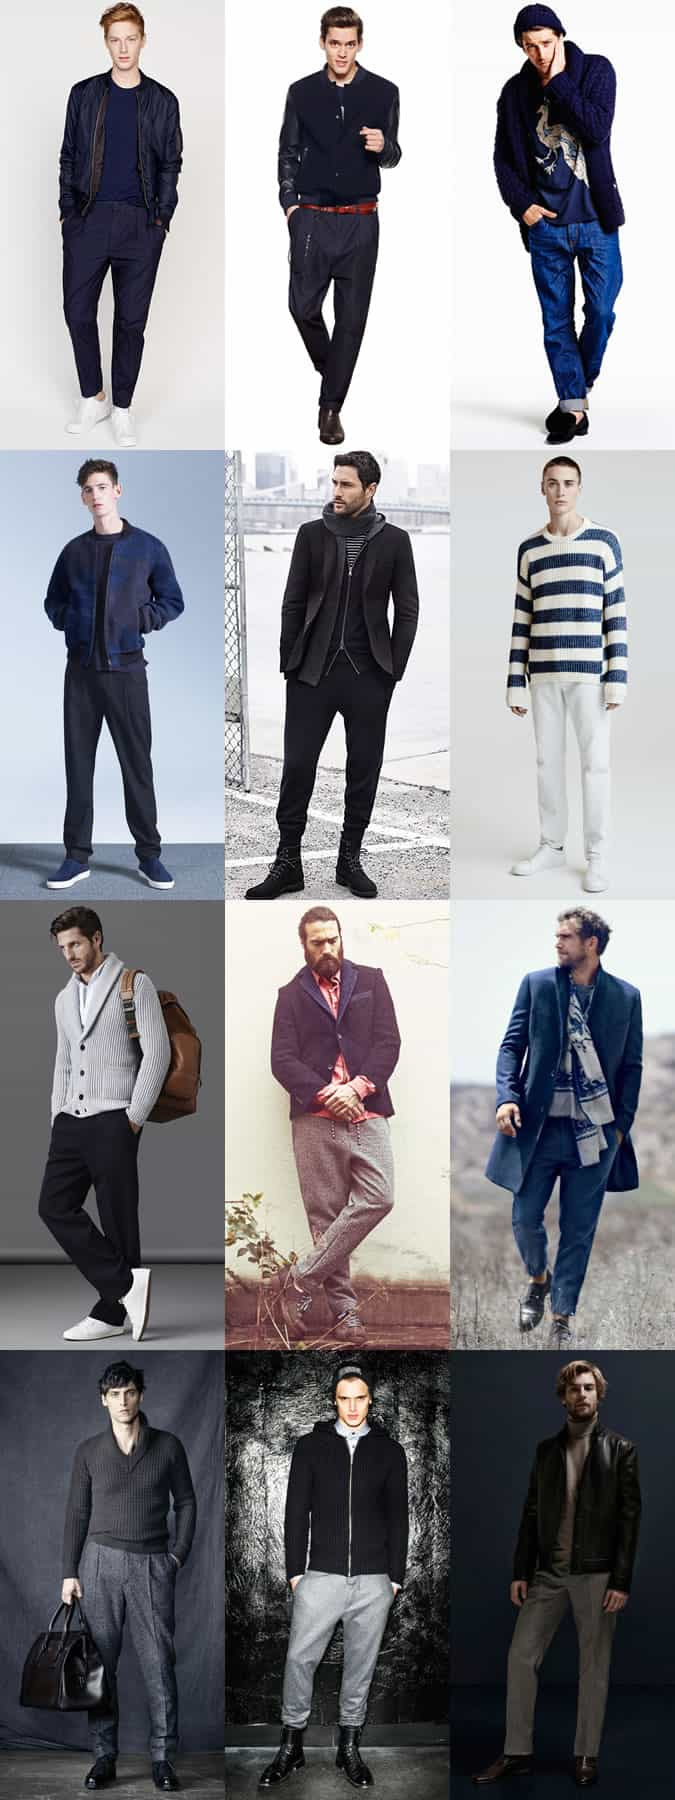 Men's Full/Straight Cut Clothing and Trousers Outfit Inspiration Lookbook